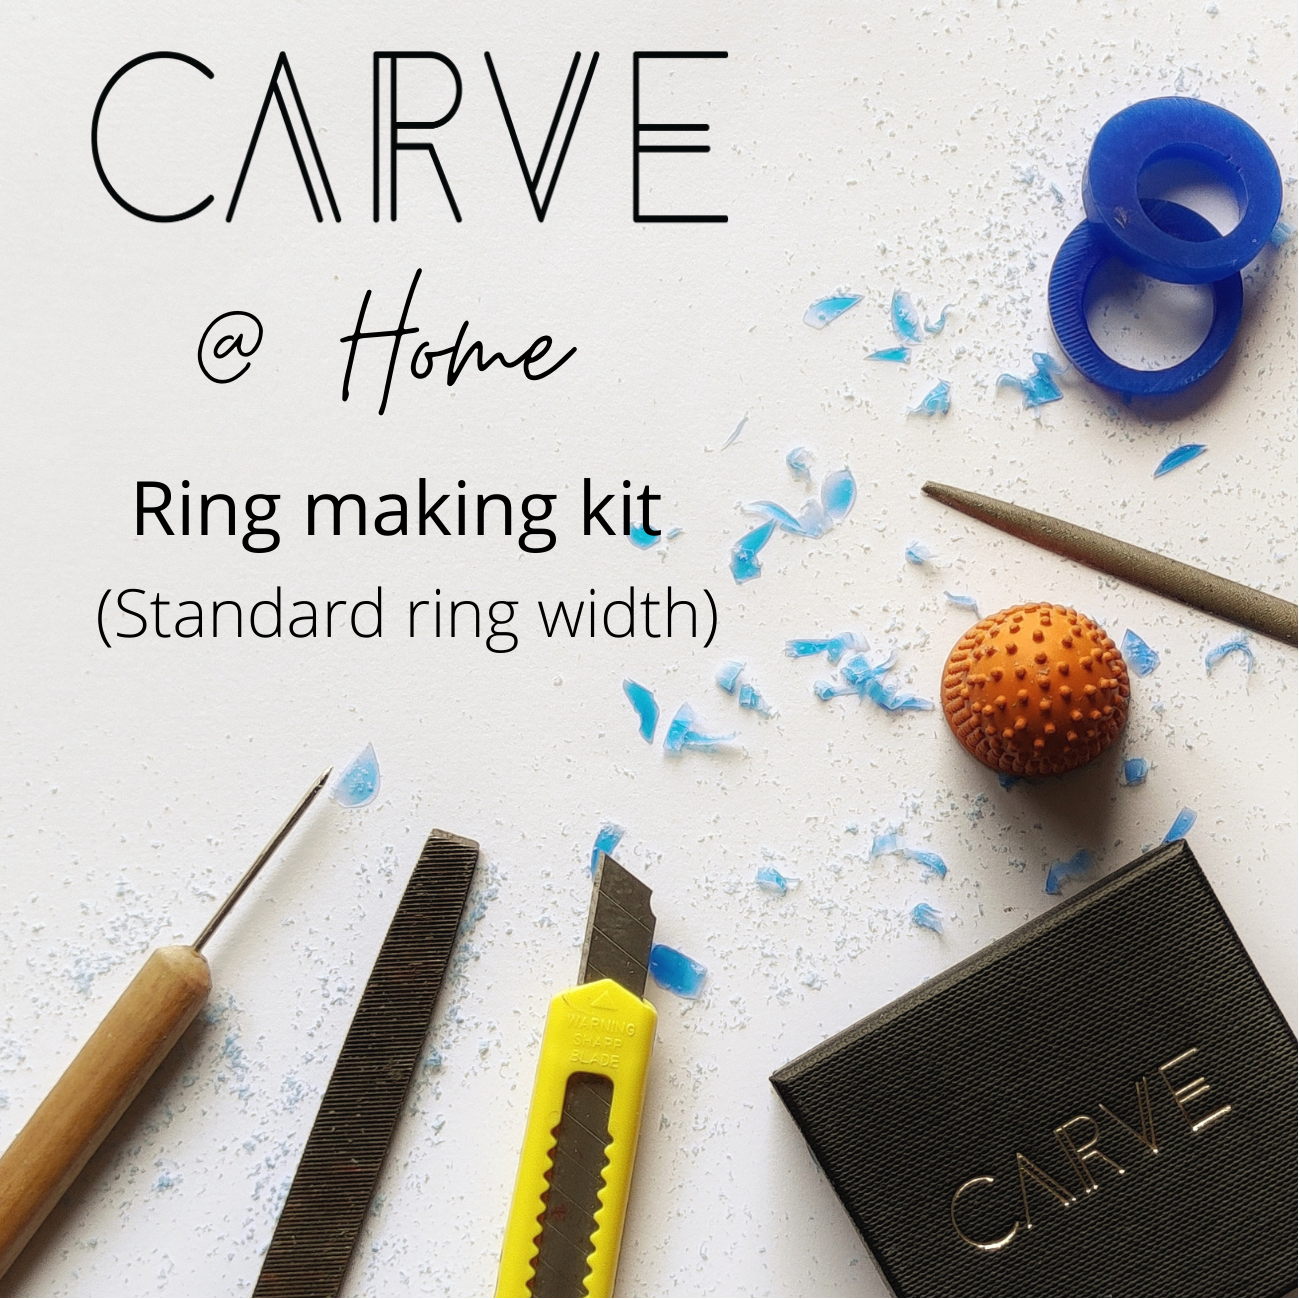 Carve @ Home ring carving kit - Standard wax